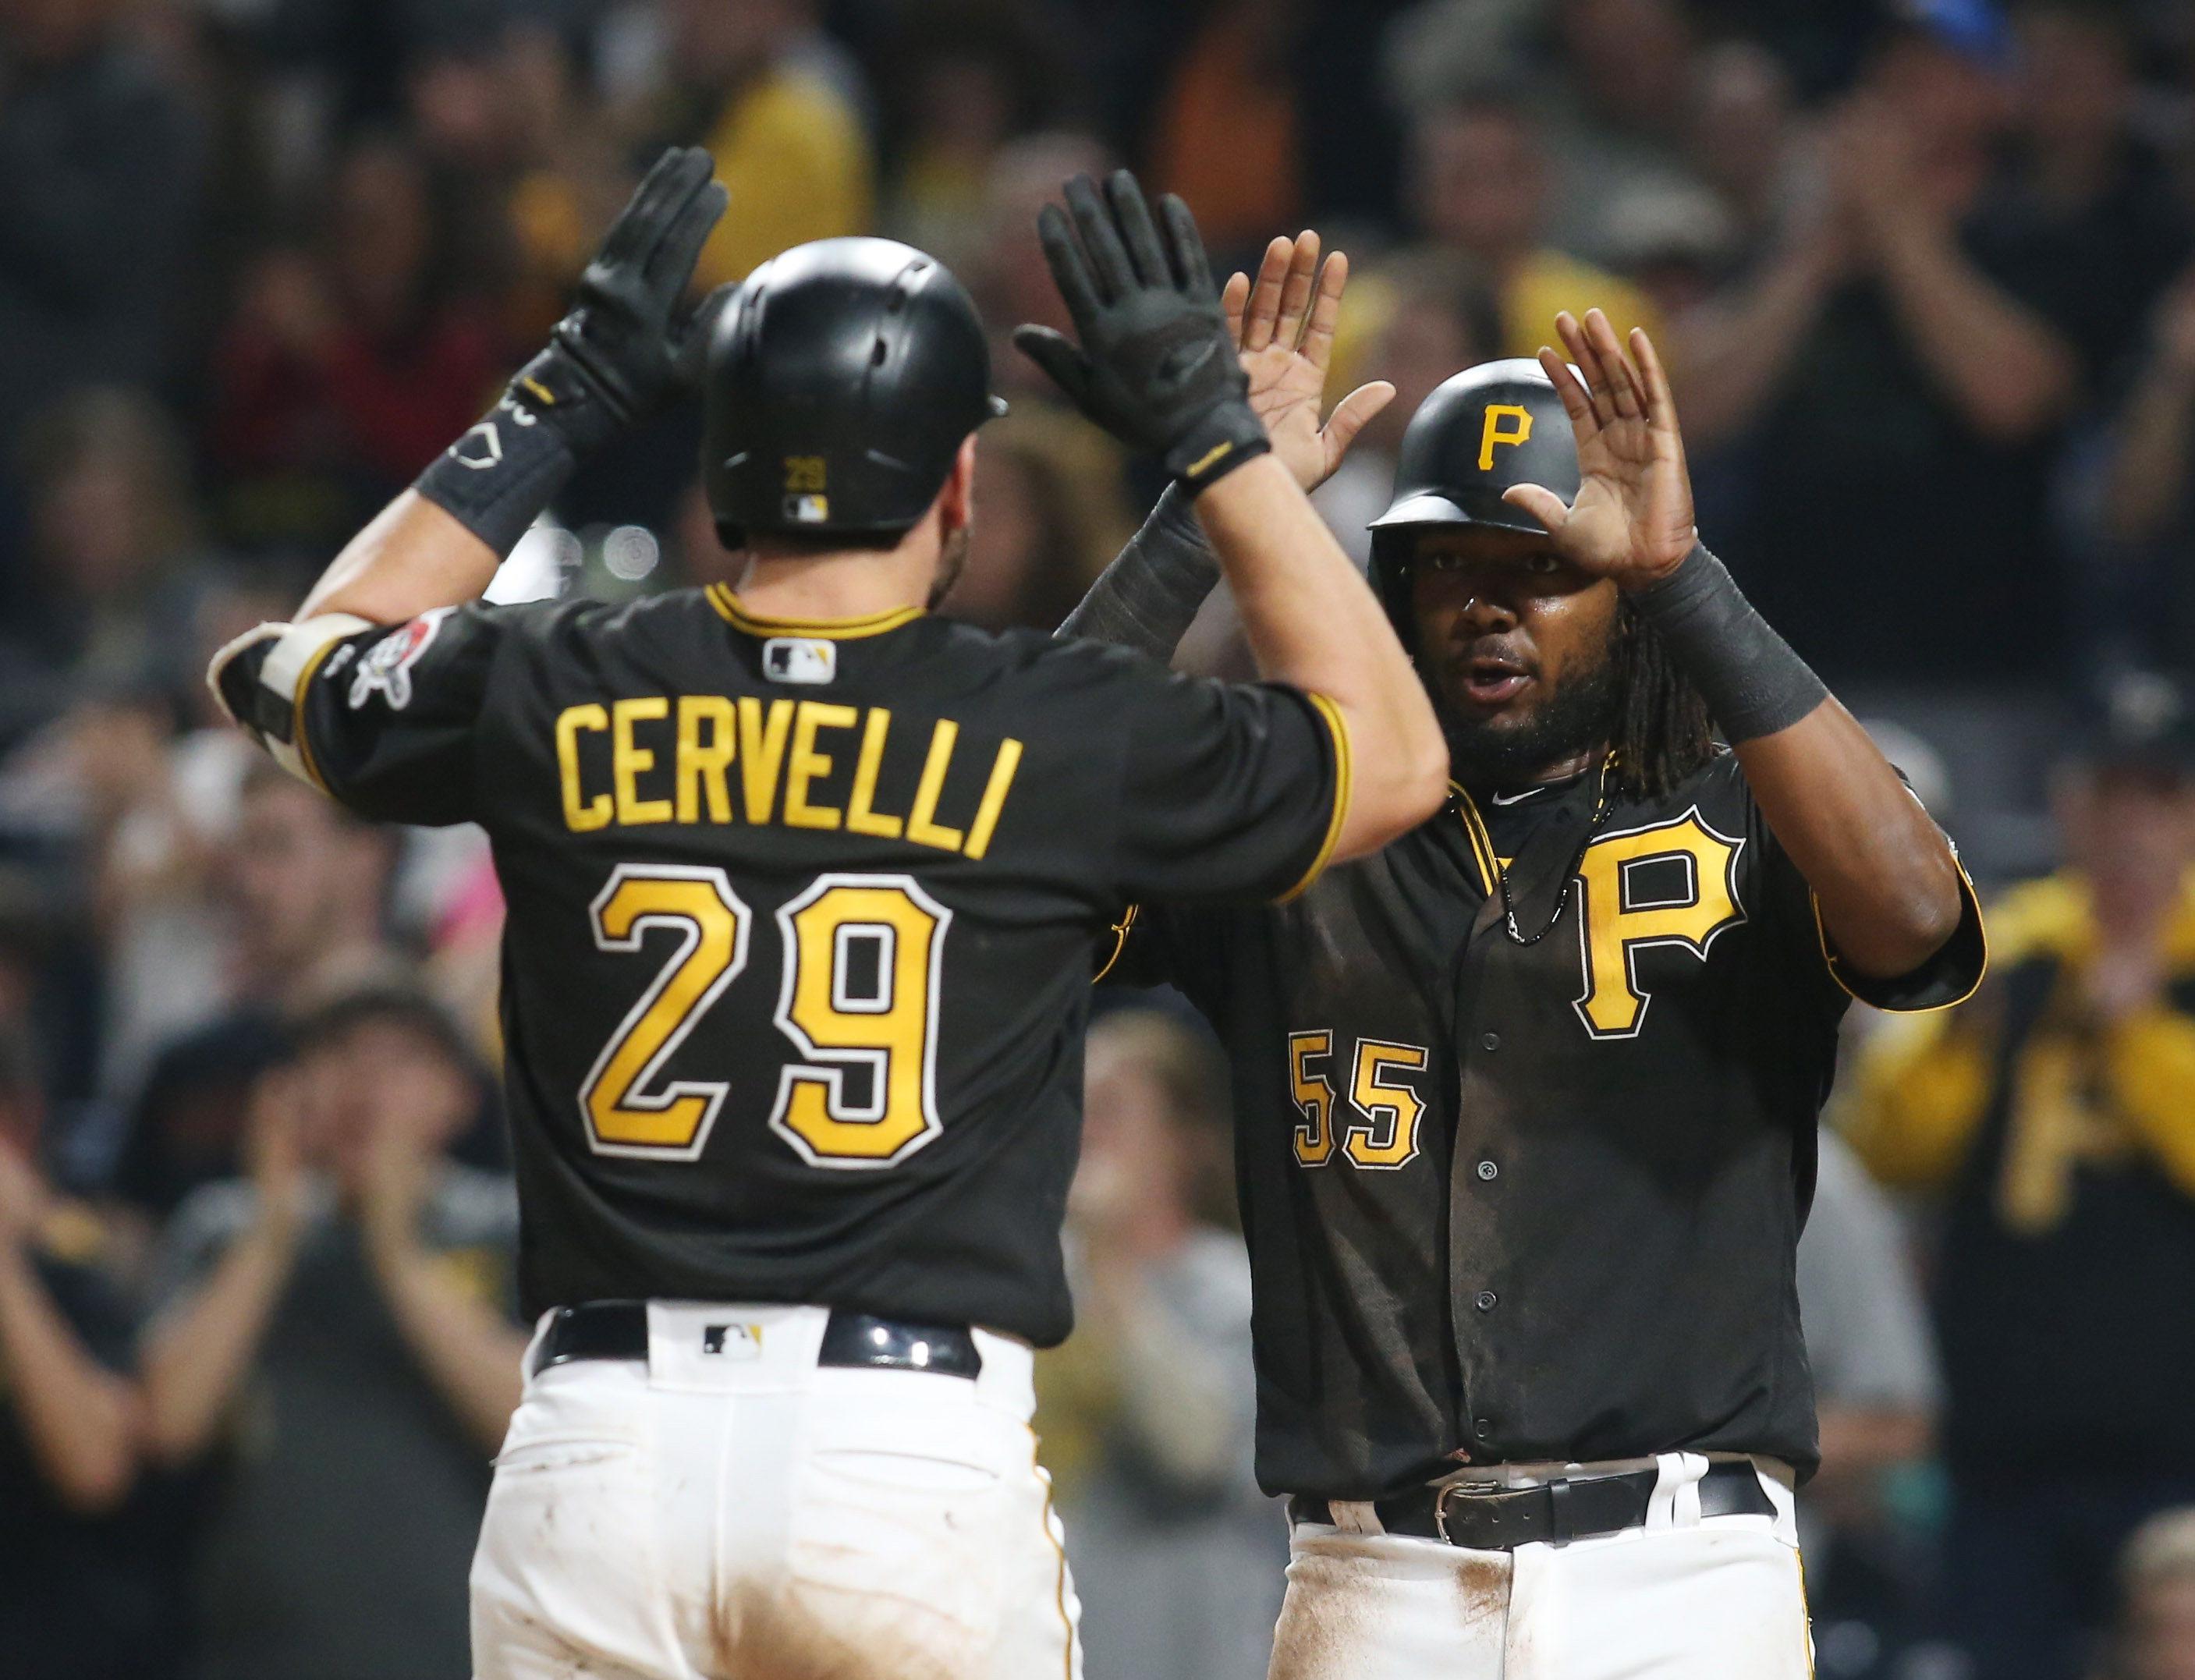 Pittsburgh Pirates Matchups to Watch: Aug. 13-19